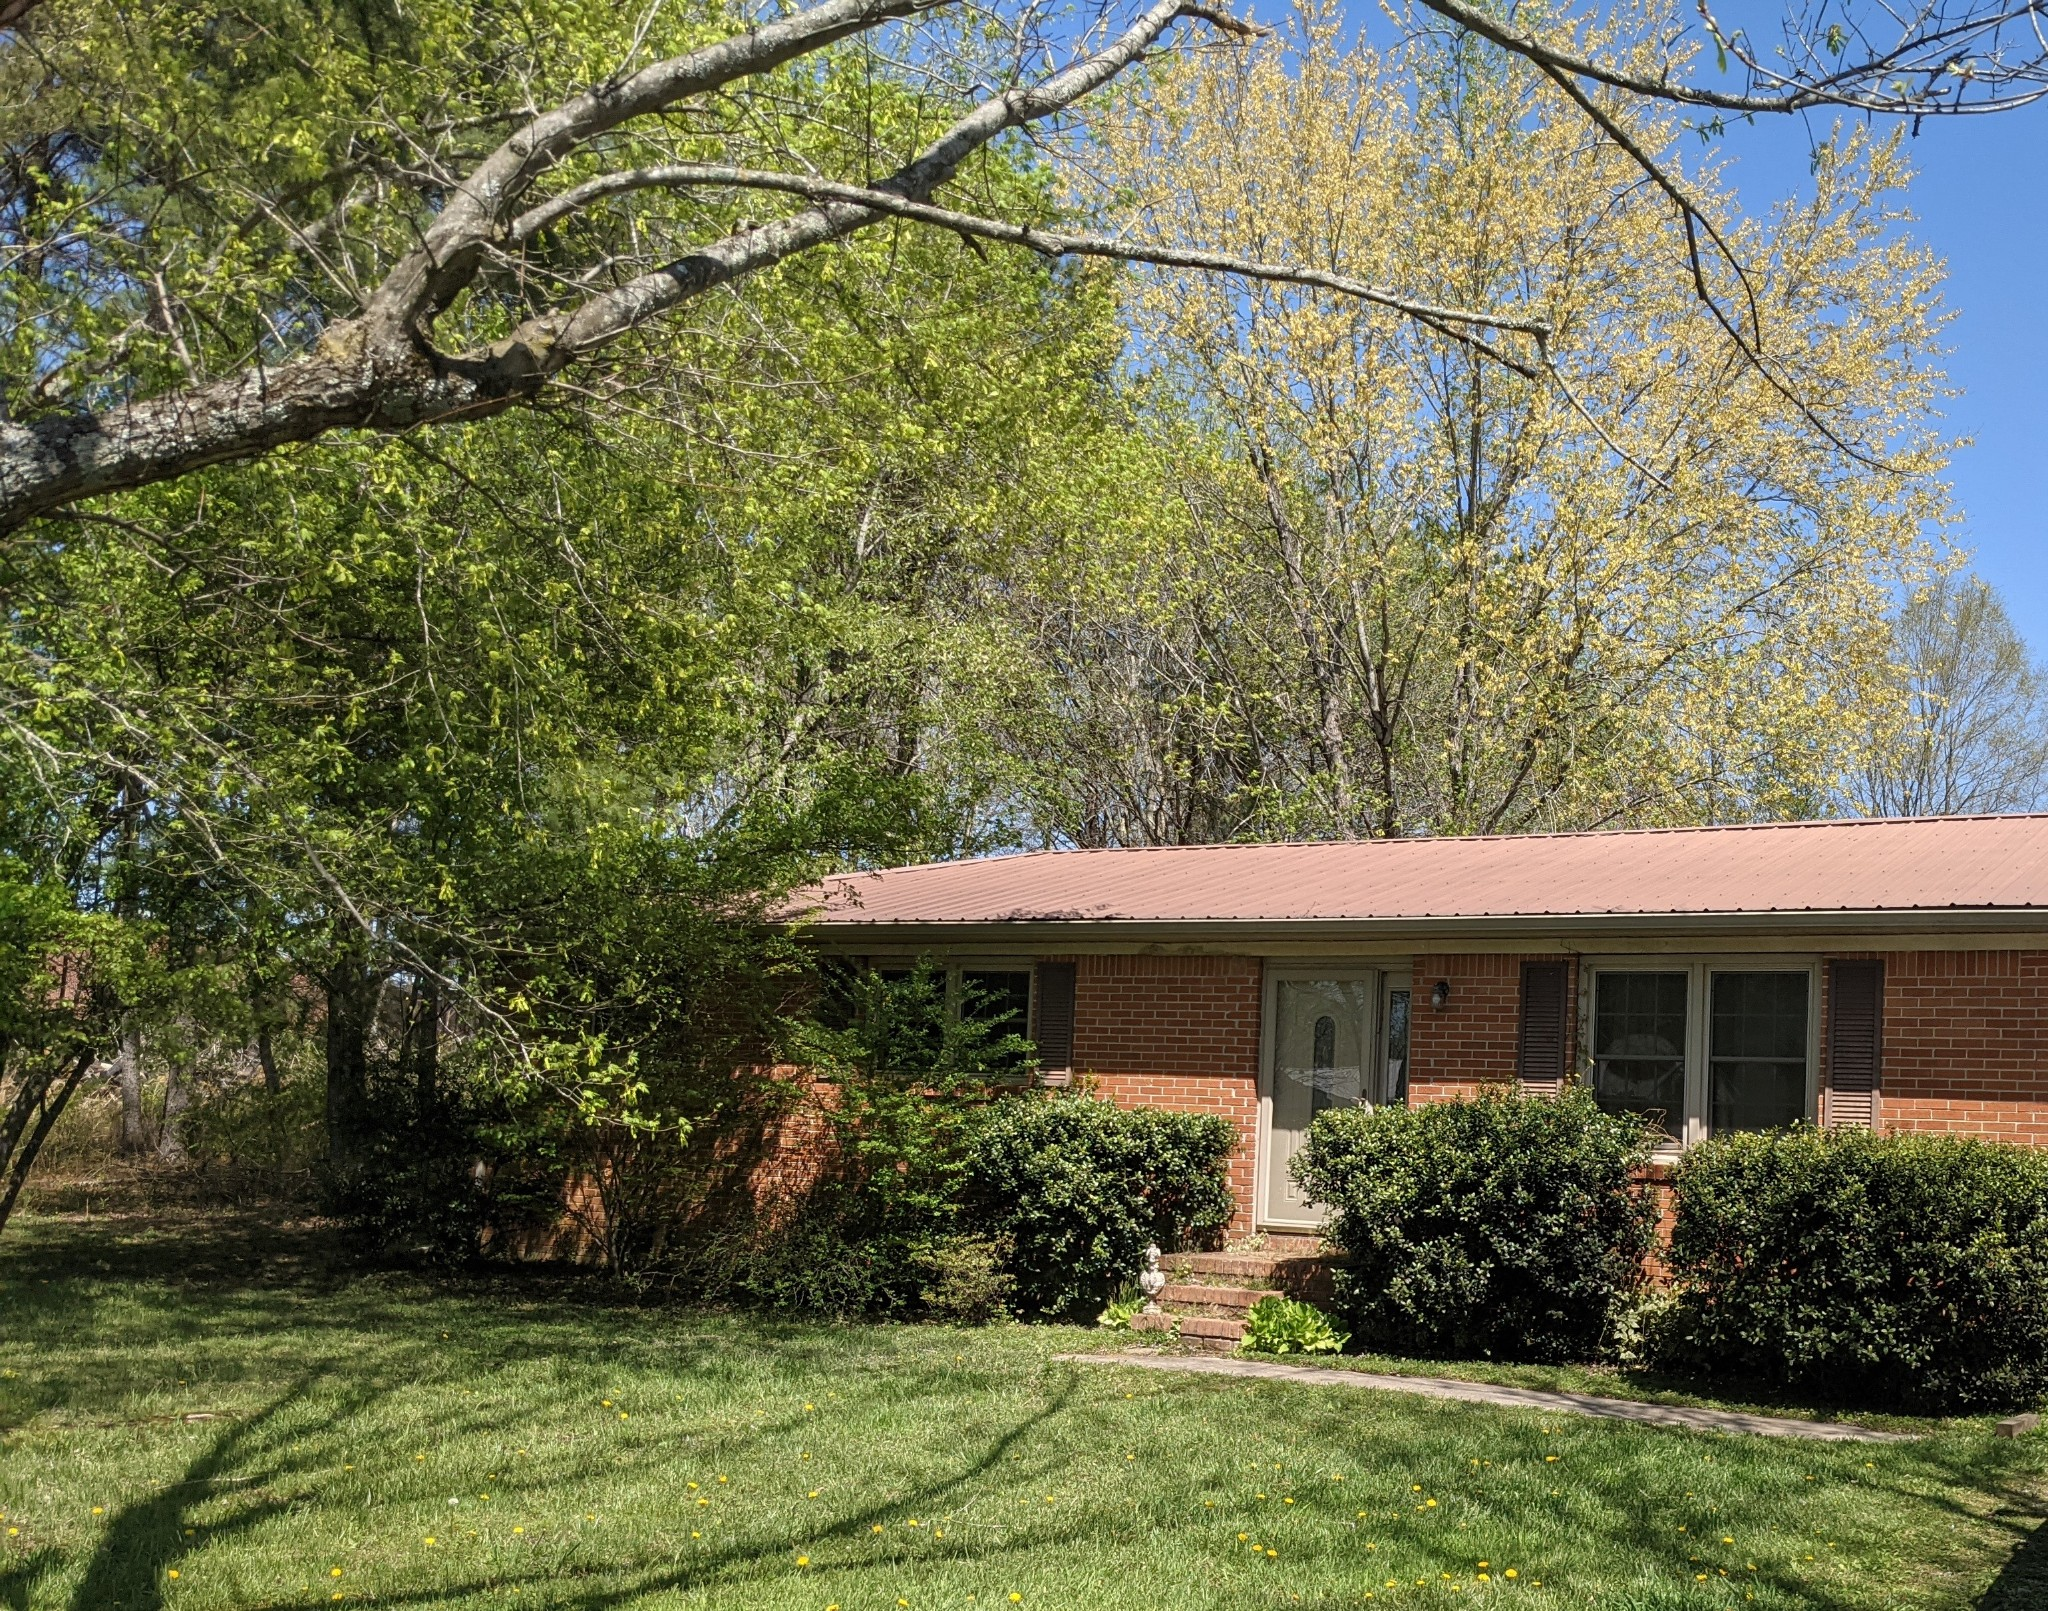 77 Sunset Dr Property Photo - Manchester, TN real estate listing